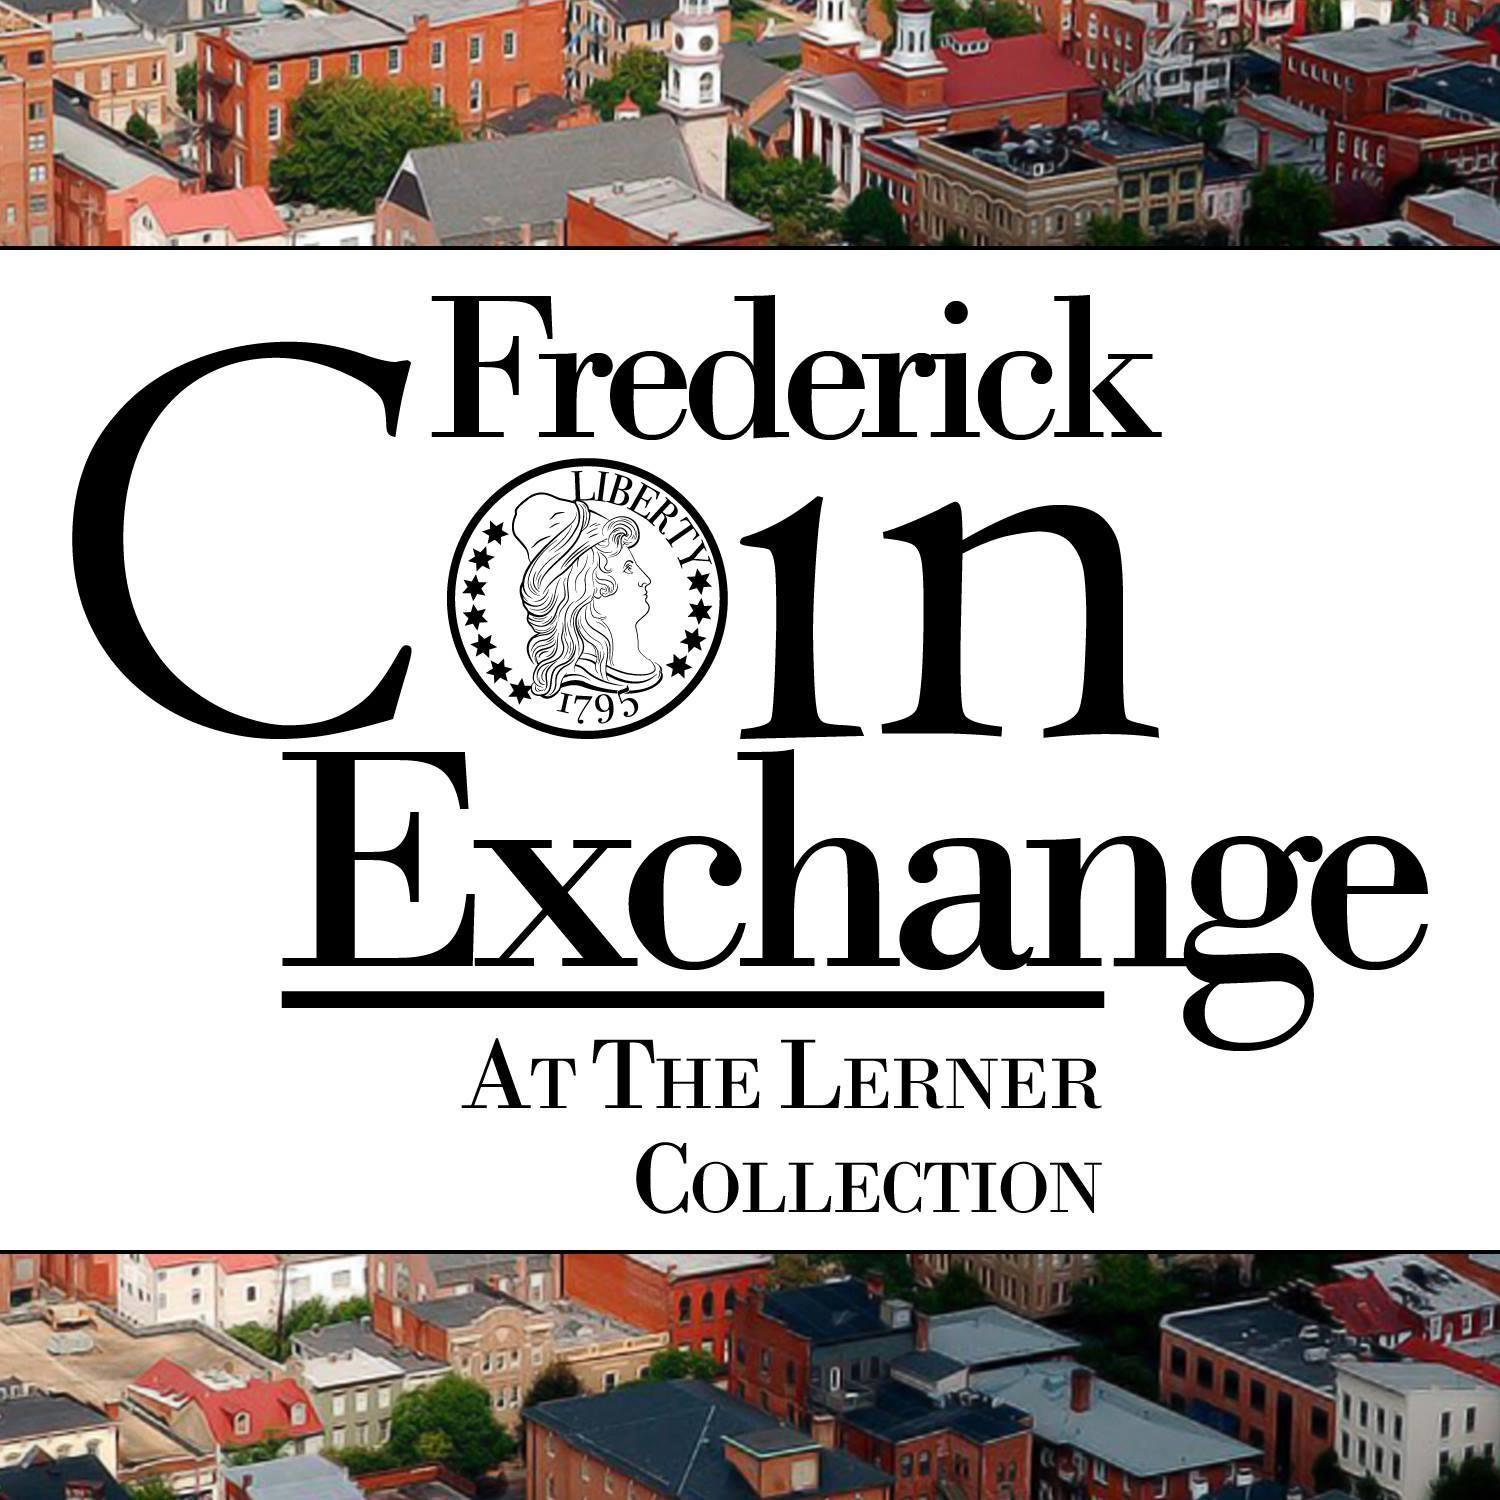 The Frederick Coin Exchange